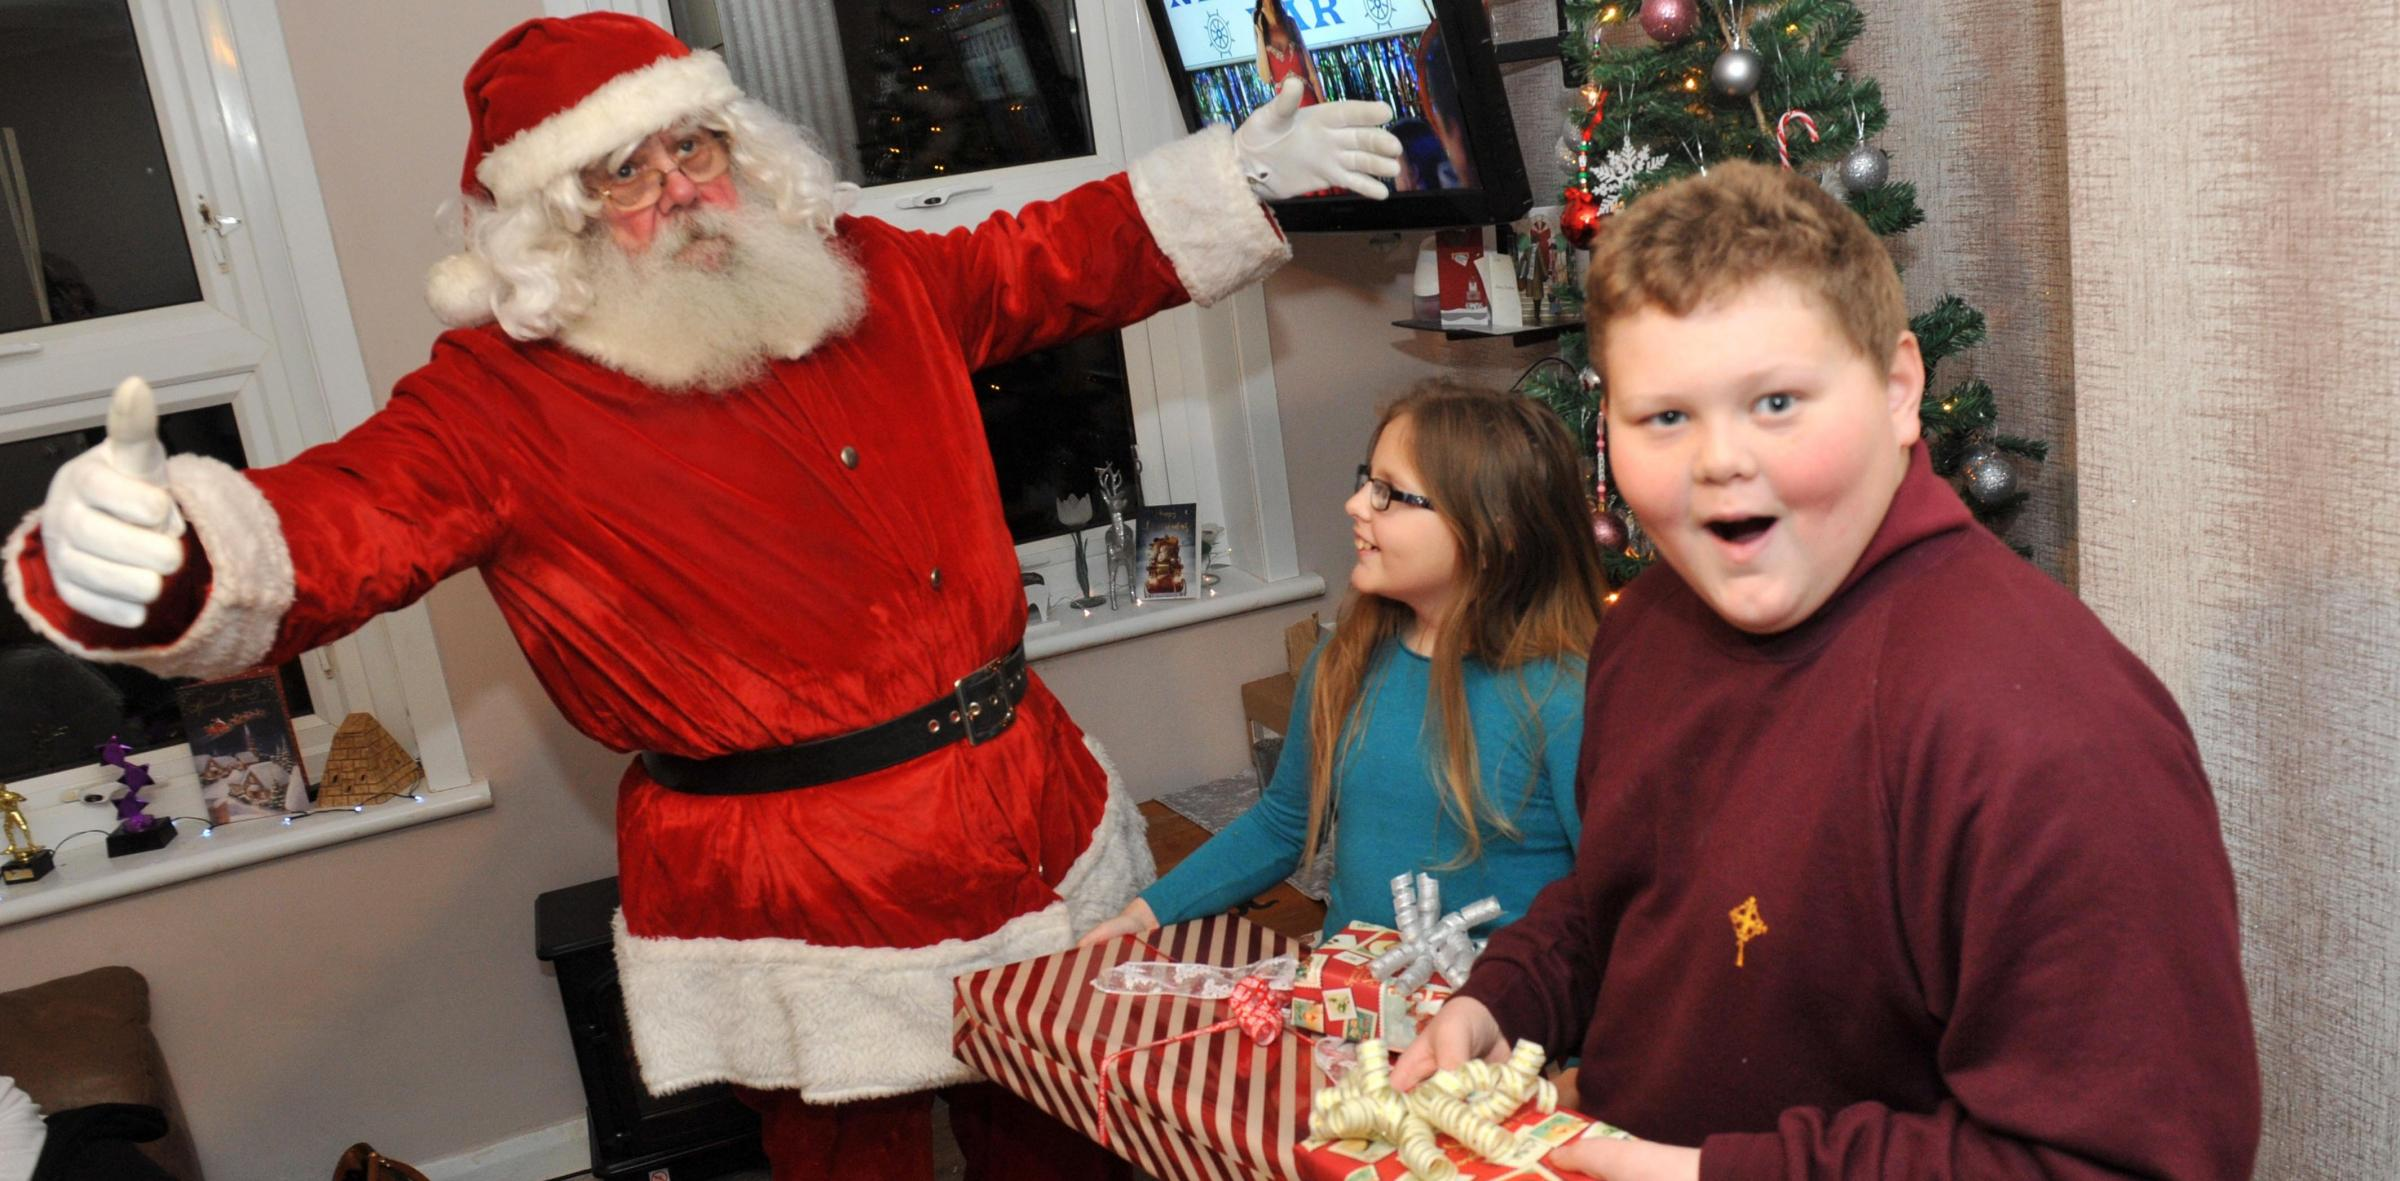 Father Christmas gives presents to Caitlin Reeves, ten, and her brother Peter Reeves, 11